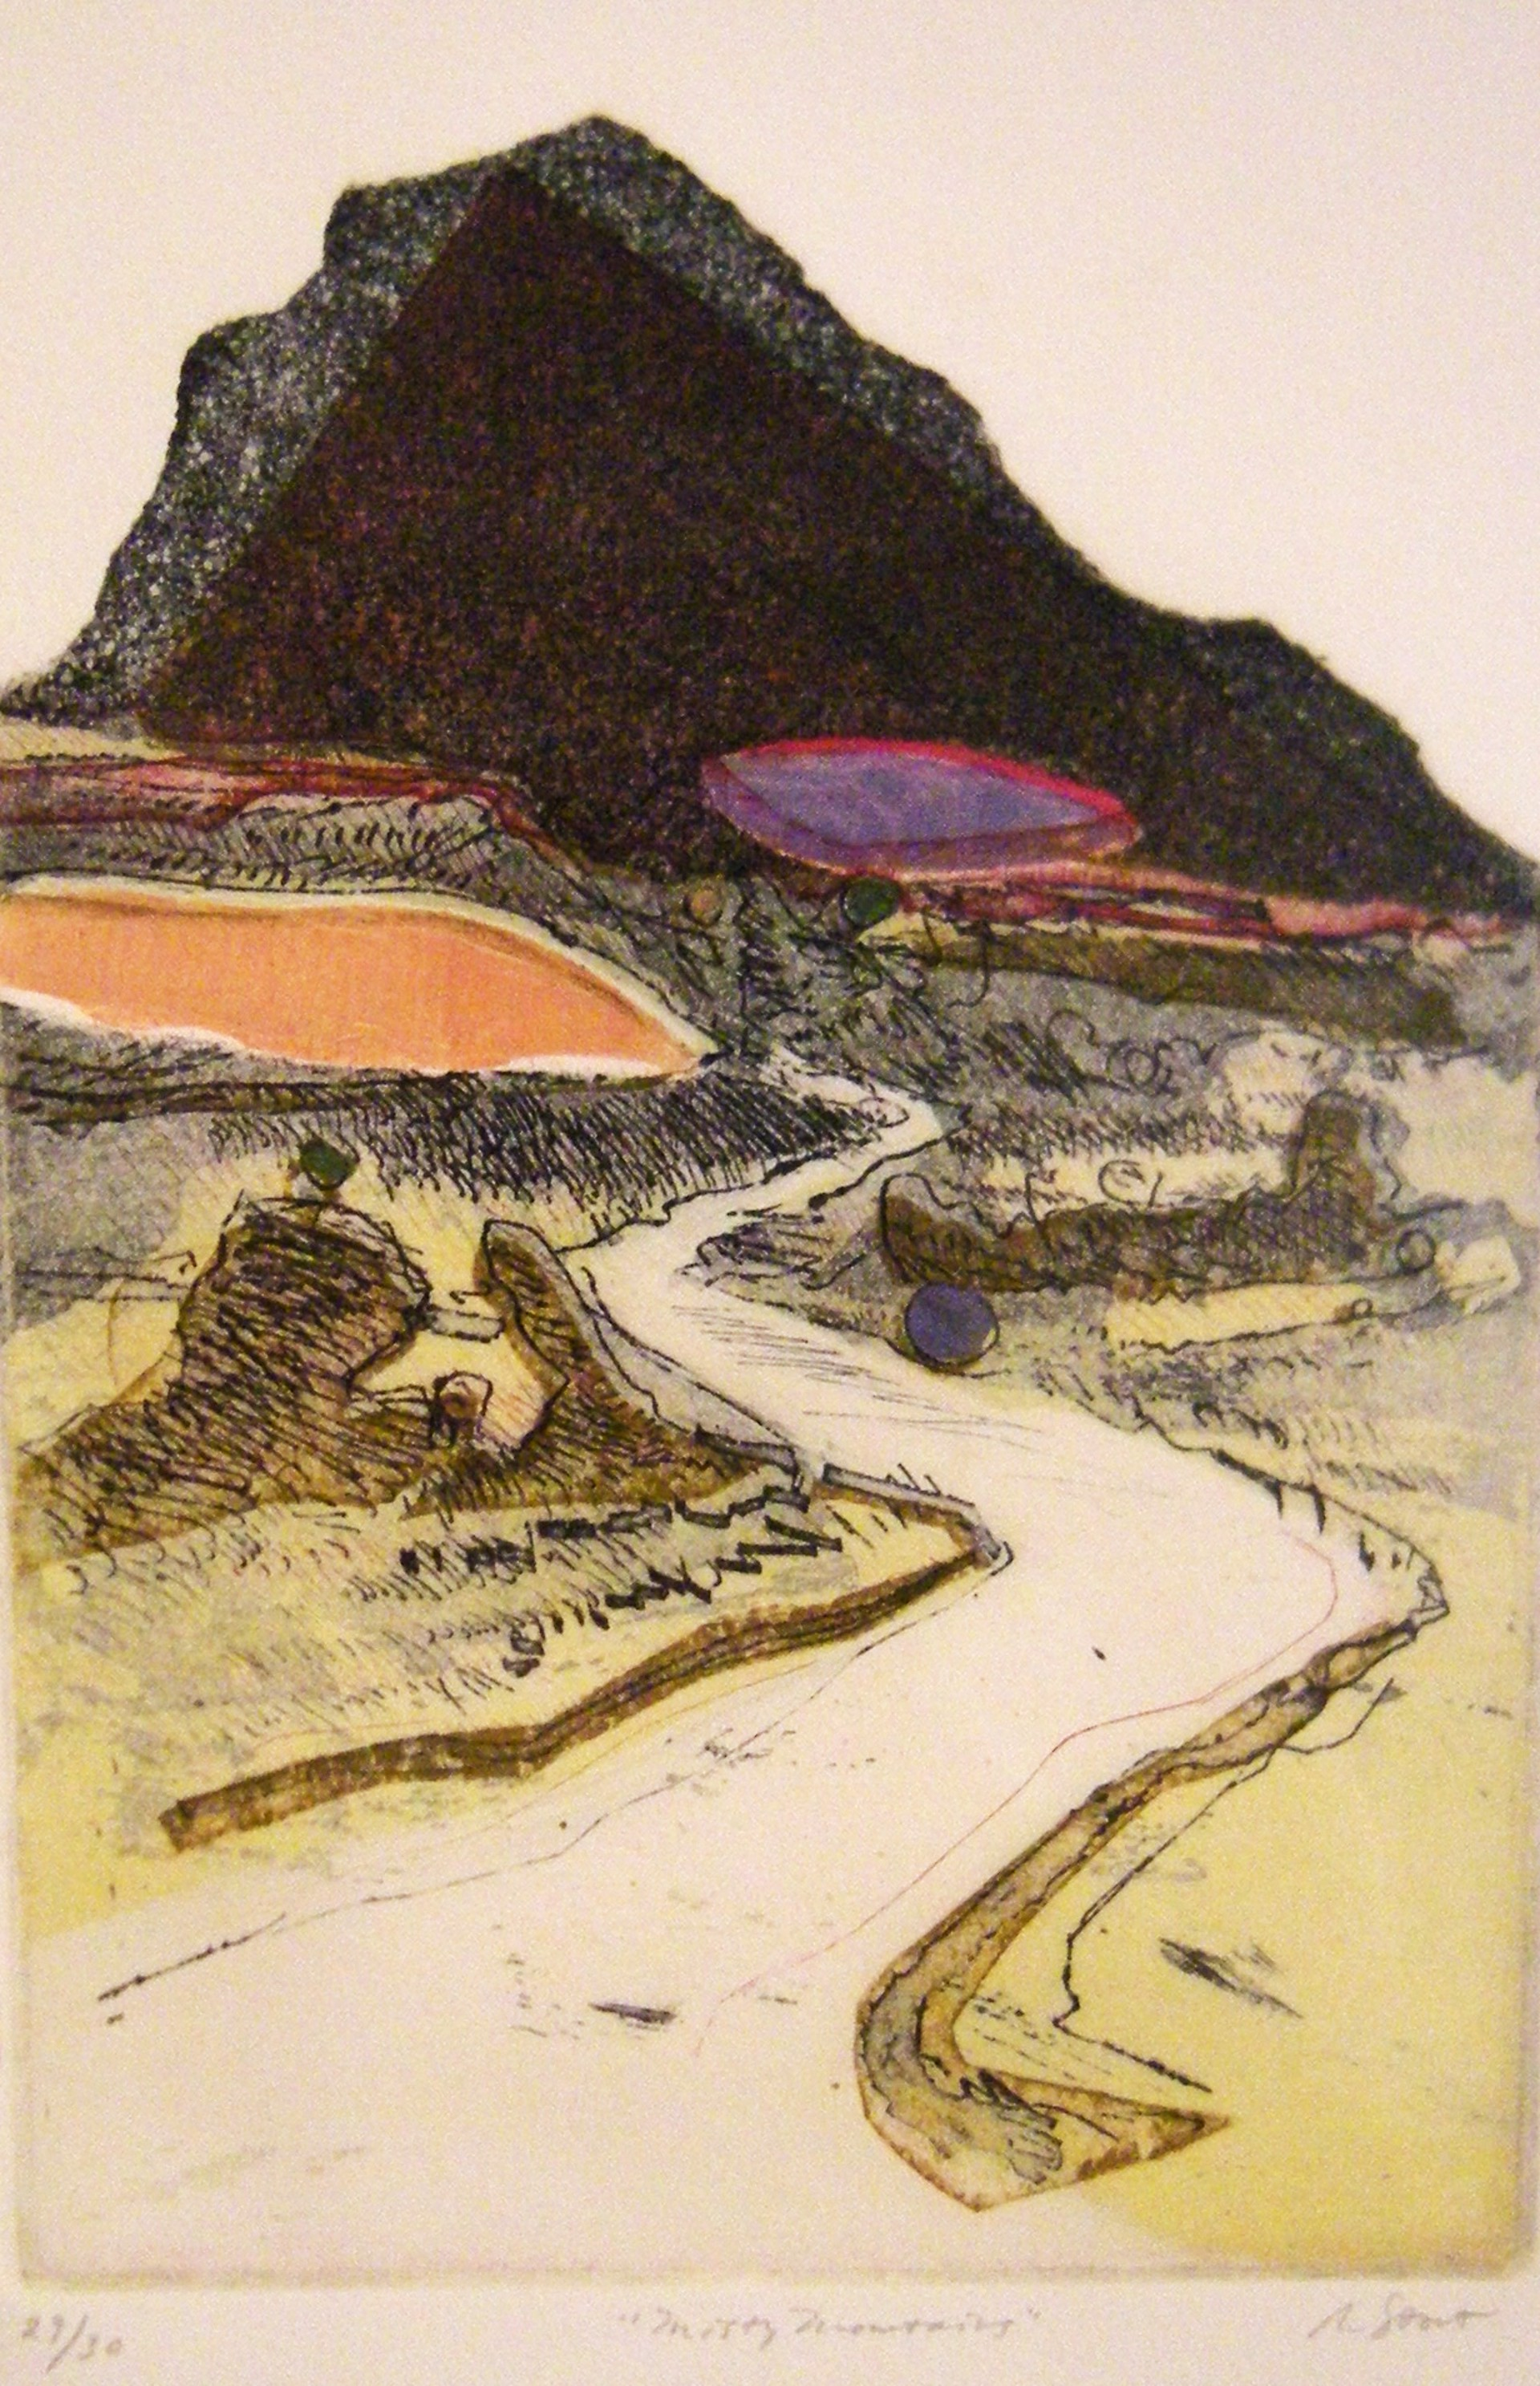 Misty Mountains (29/30) by Richard Stout - Works on Paper